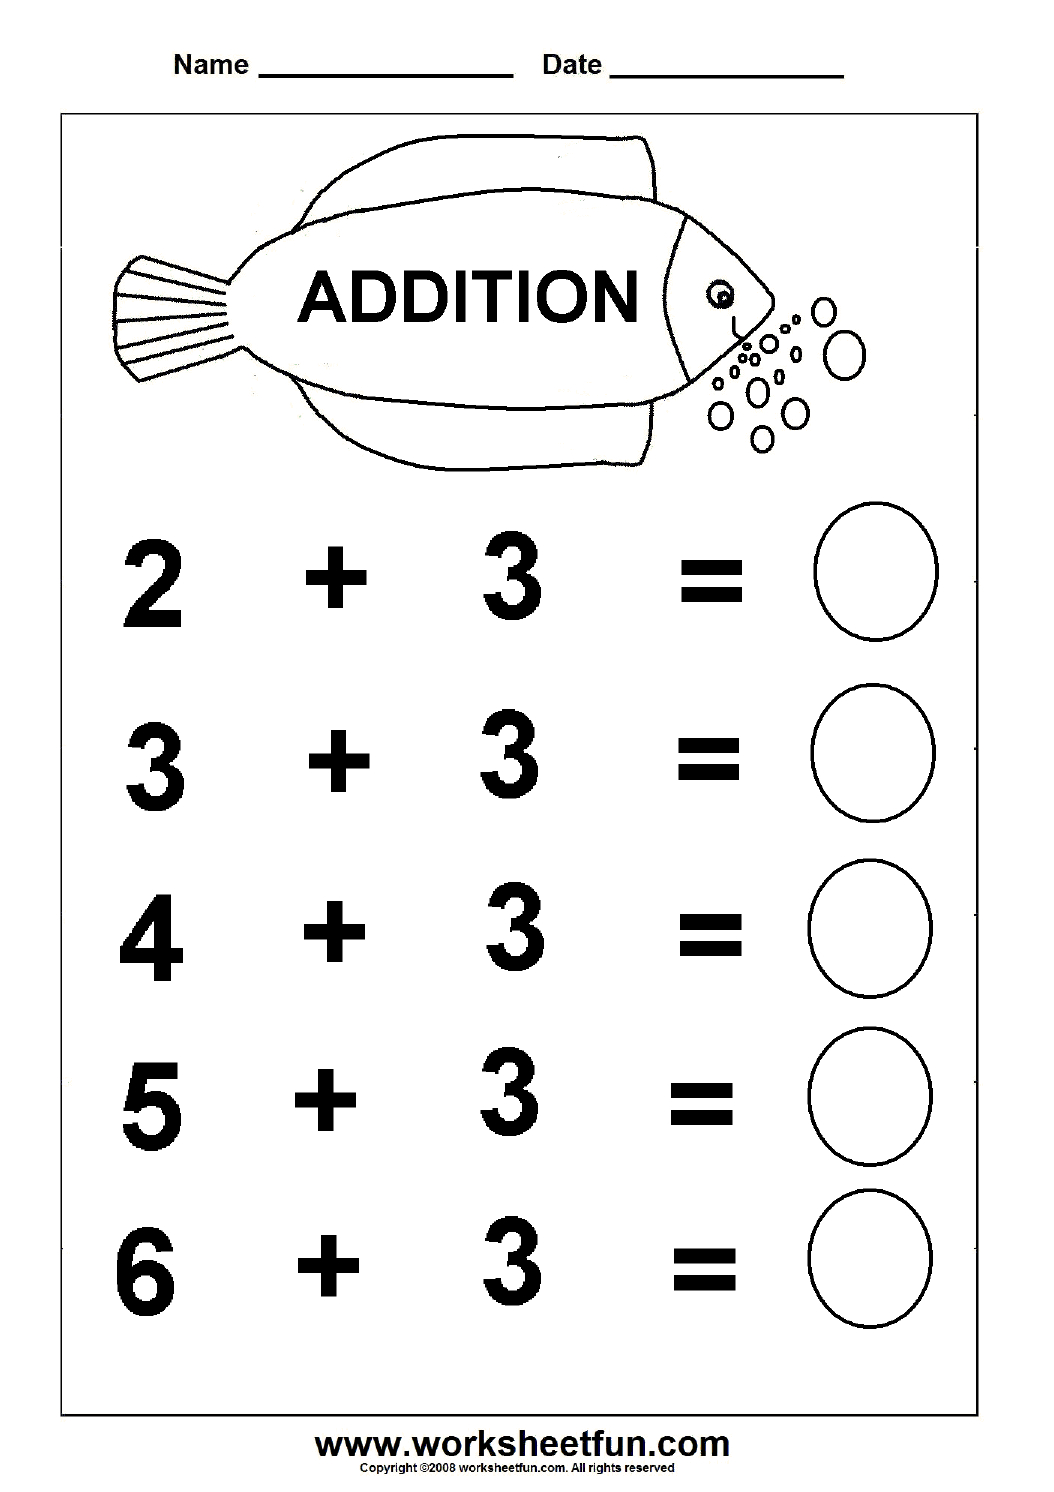 Beginner Addition – 6 Kindergarten Addition Worksheets / Free | Free Printable Math Worksheets For Kindergarten